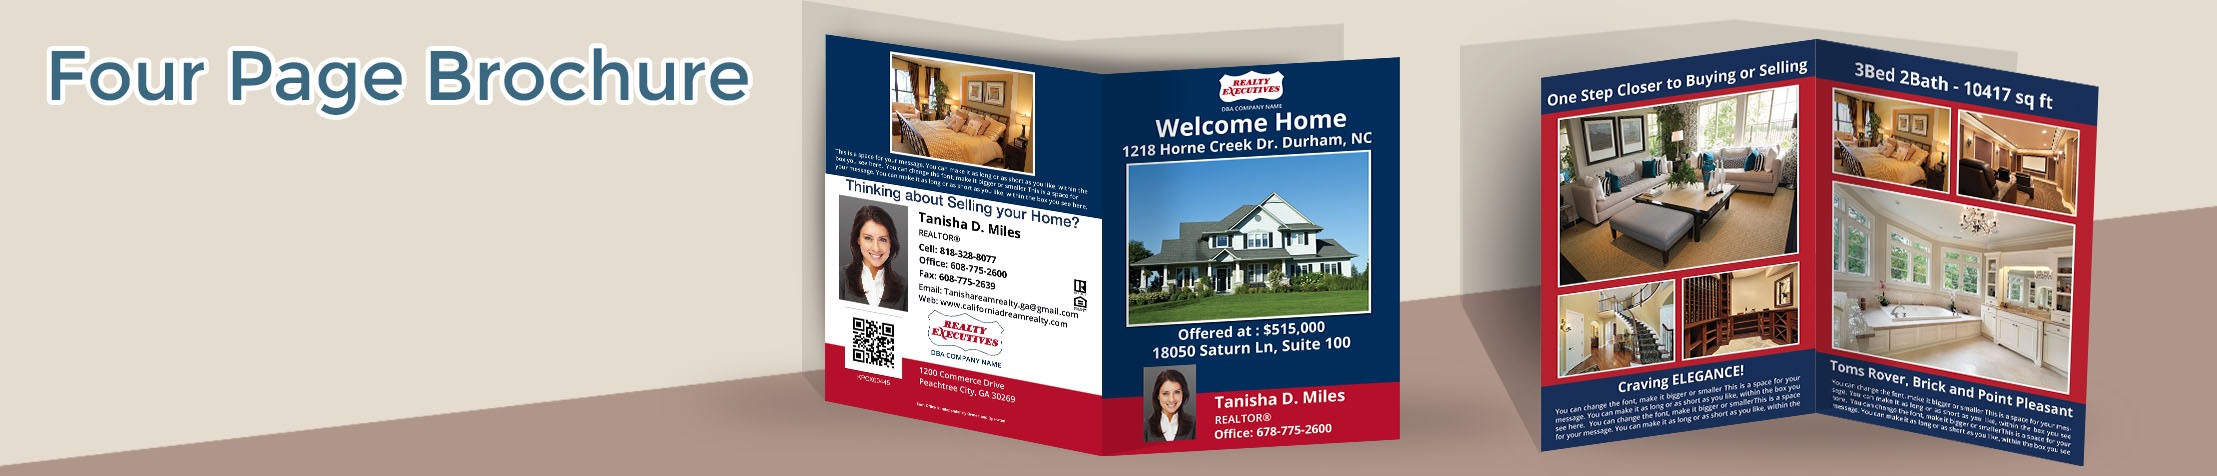 Realty Executives Real Estate Flyers and Brochures - Realty Executives  four page brochure templates for open houses and marketing | BestPrintBuy.com